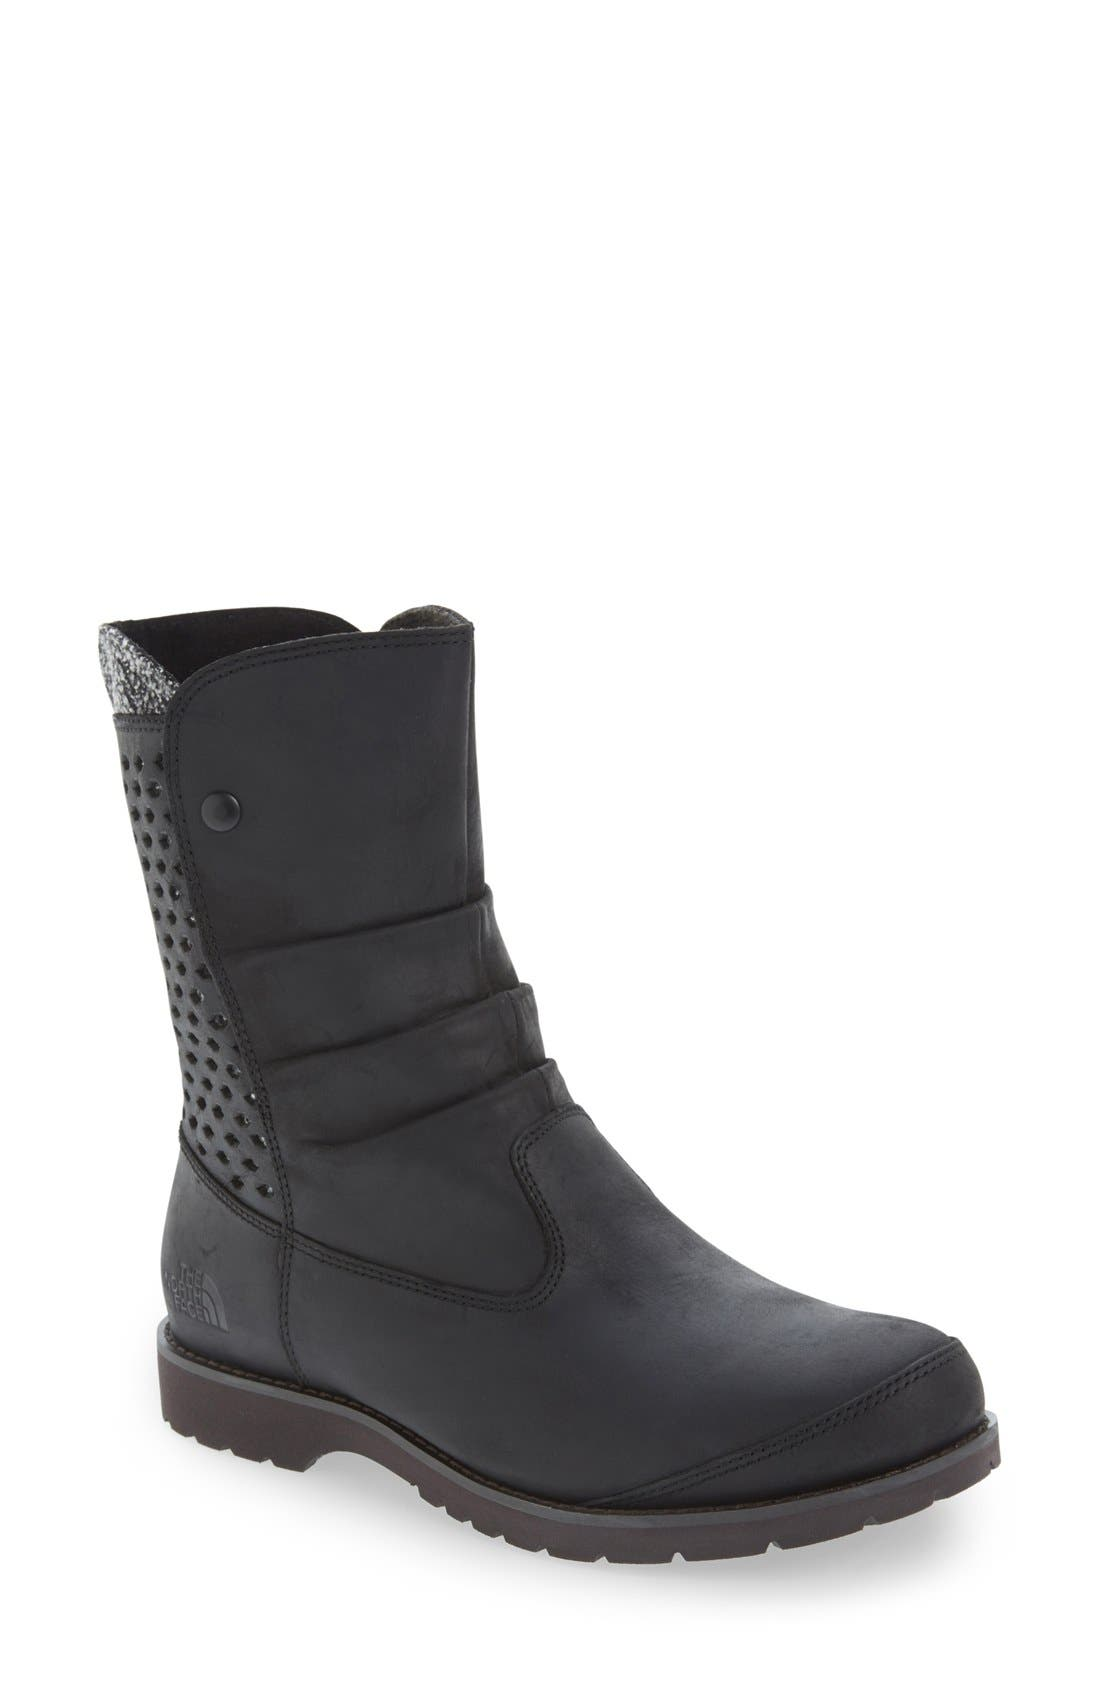 Alternate Image 1 Selected - The North Face 'Ballard' Pull-On Boot (Women)